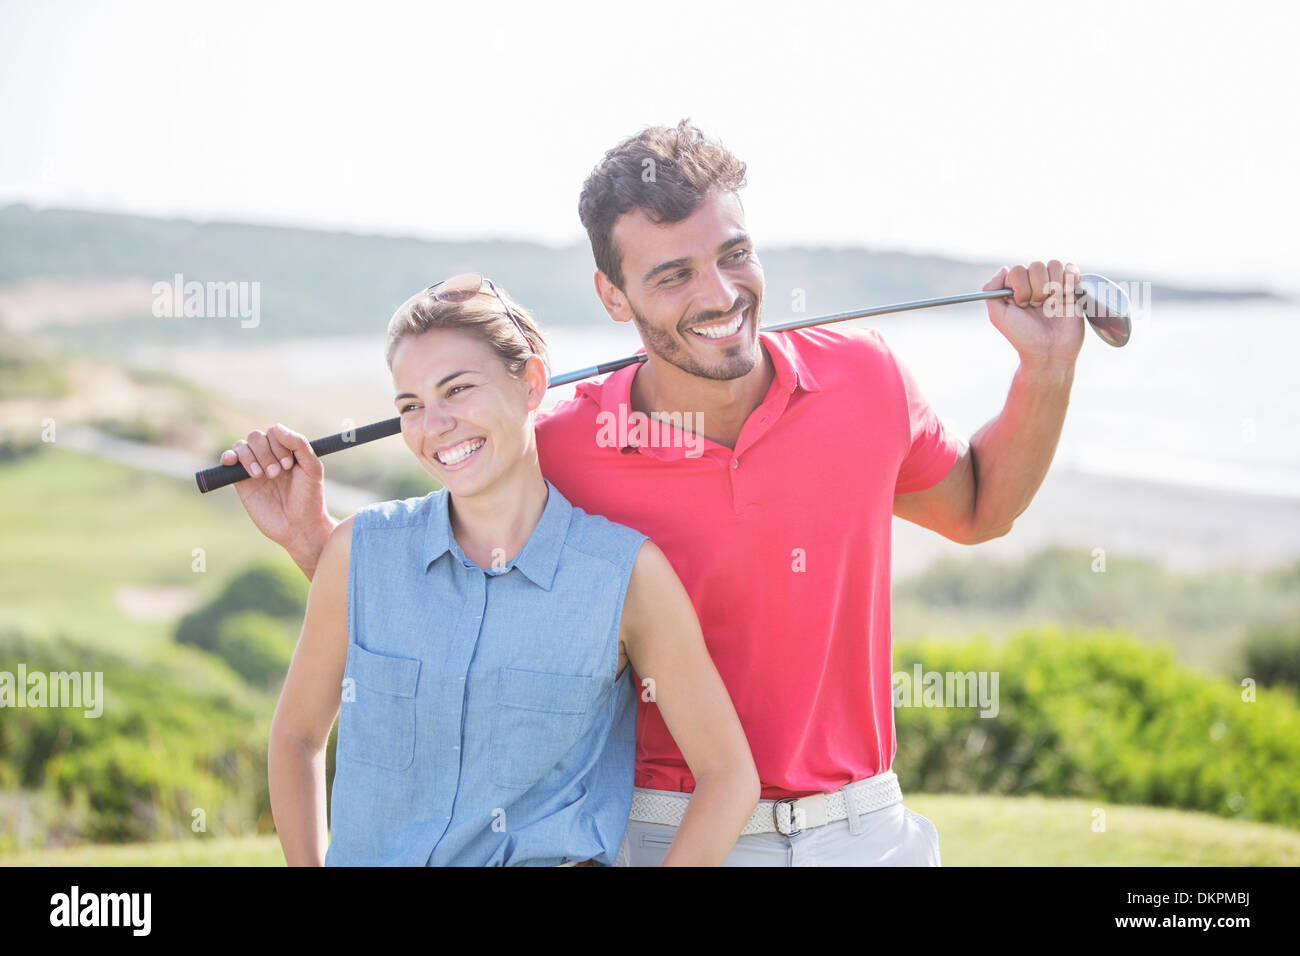 Happy couple on golf course - Stock Image